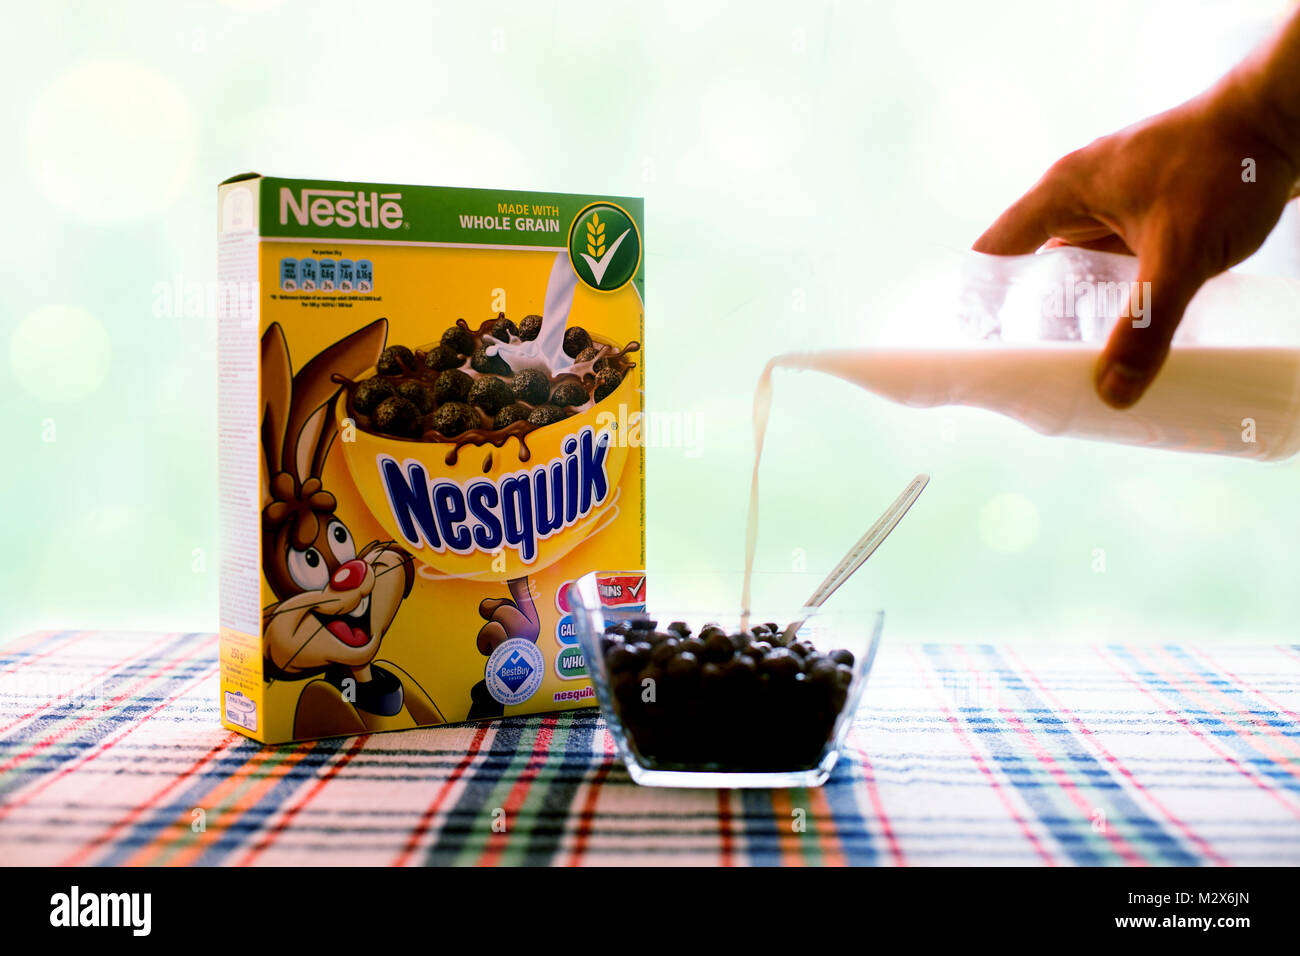 SOFIA , BULGAIRA  April 29, 2015: box Nesquick morning cereal and human hand with milk. Nesquick is made by Nestle - Stock Image